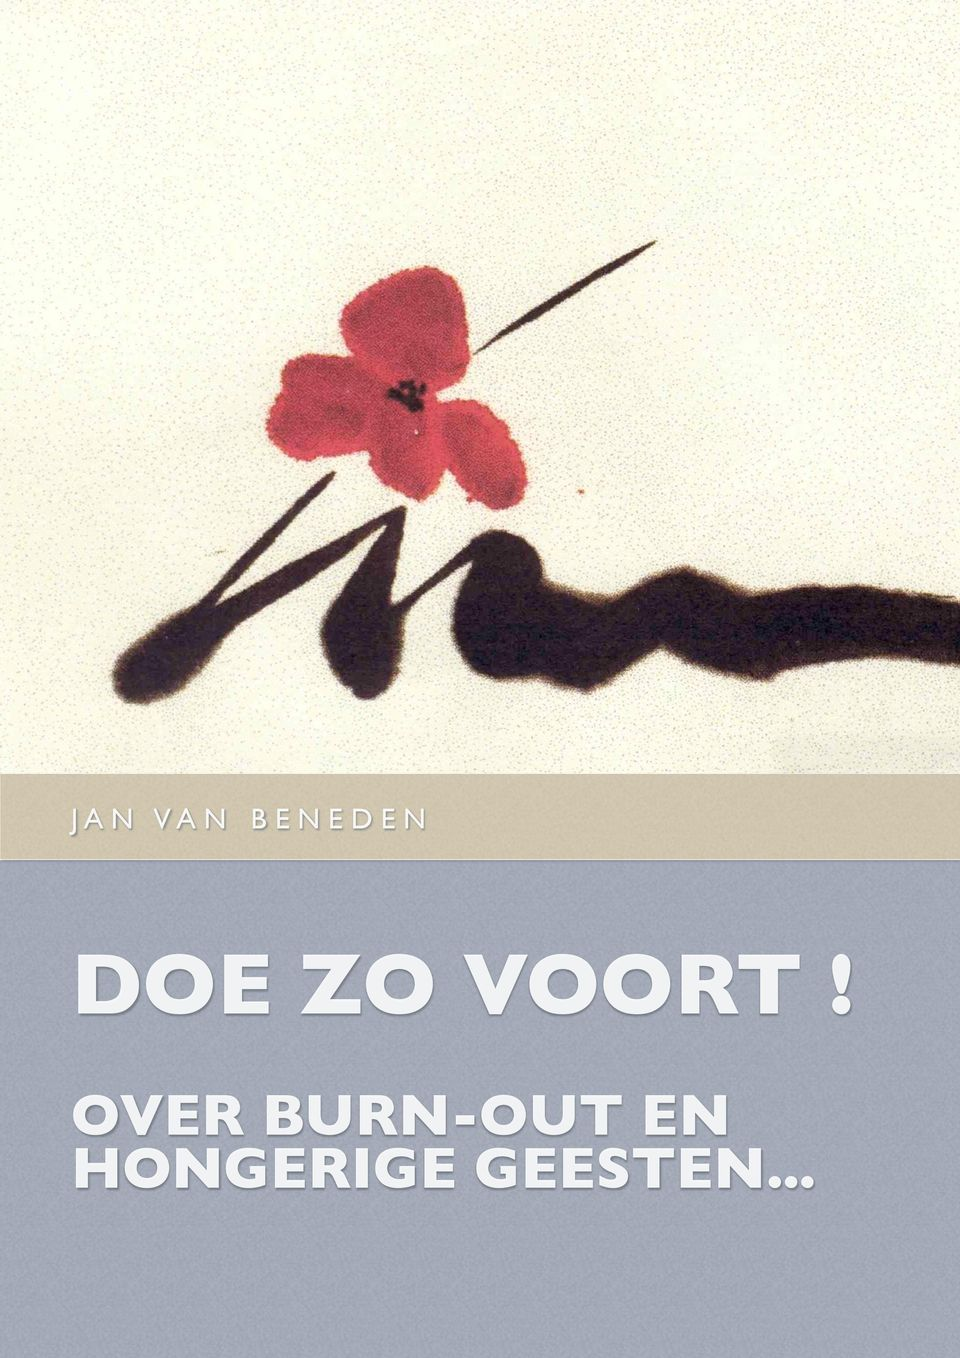 OVER BURN-OUT EN